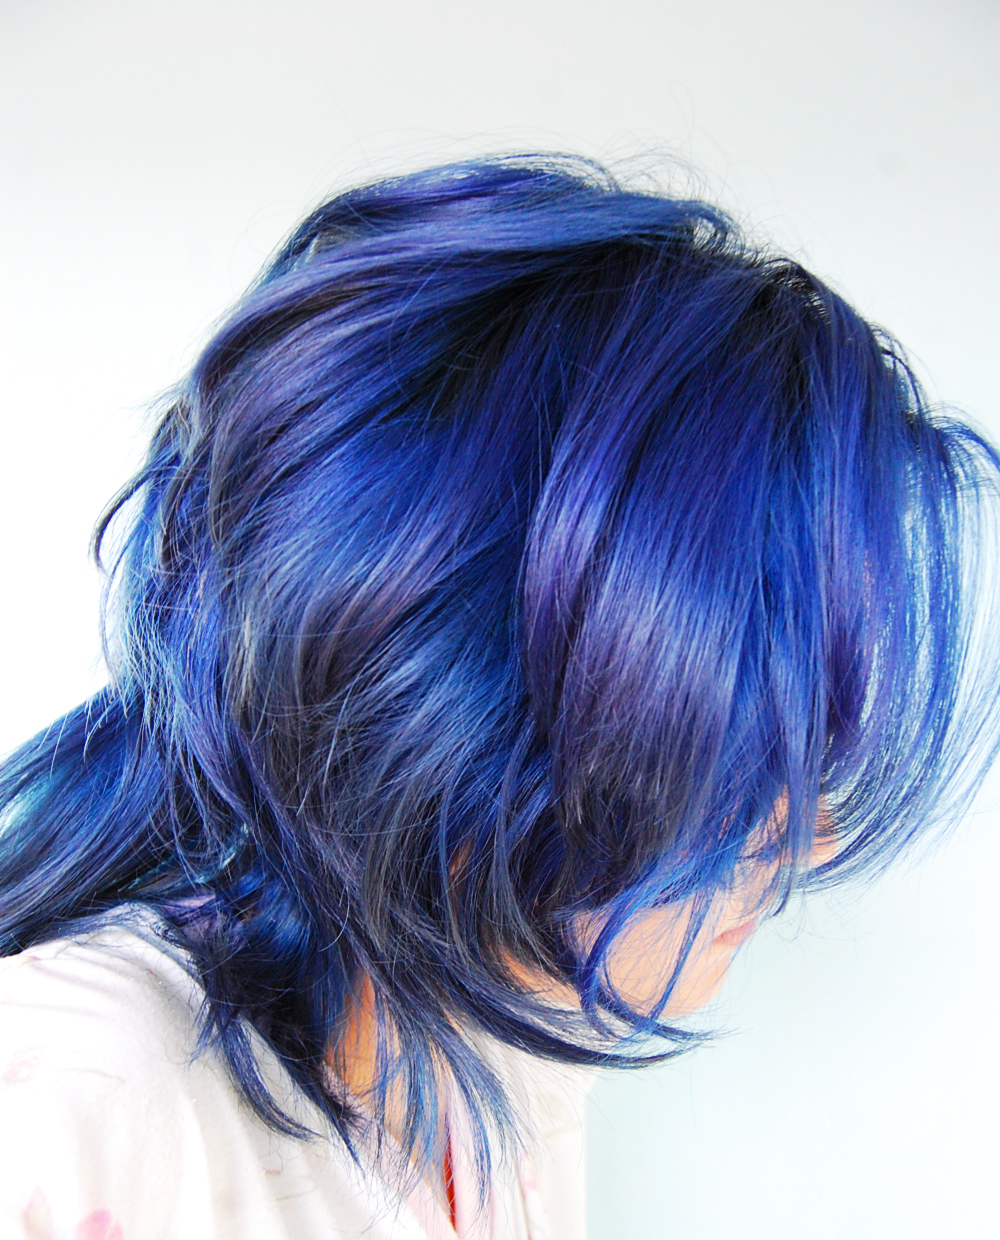 How To Fade Blue Hair Dye Quickly